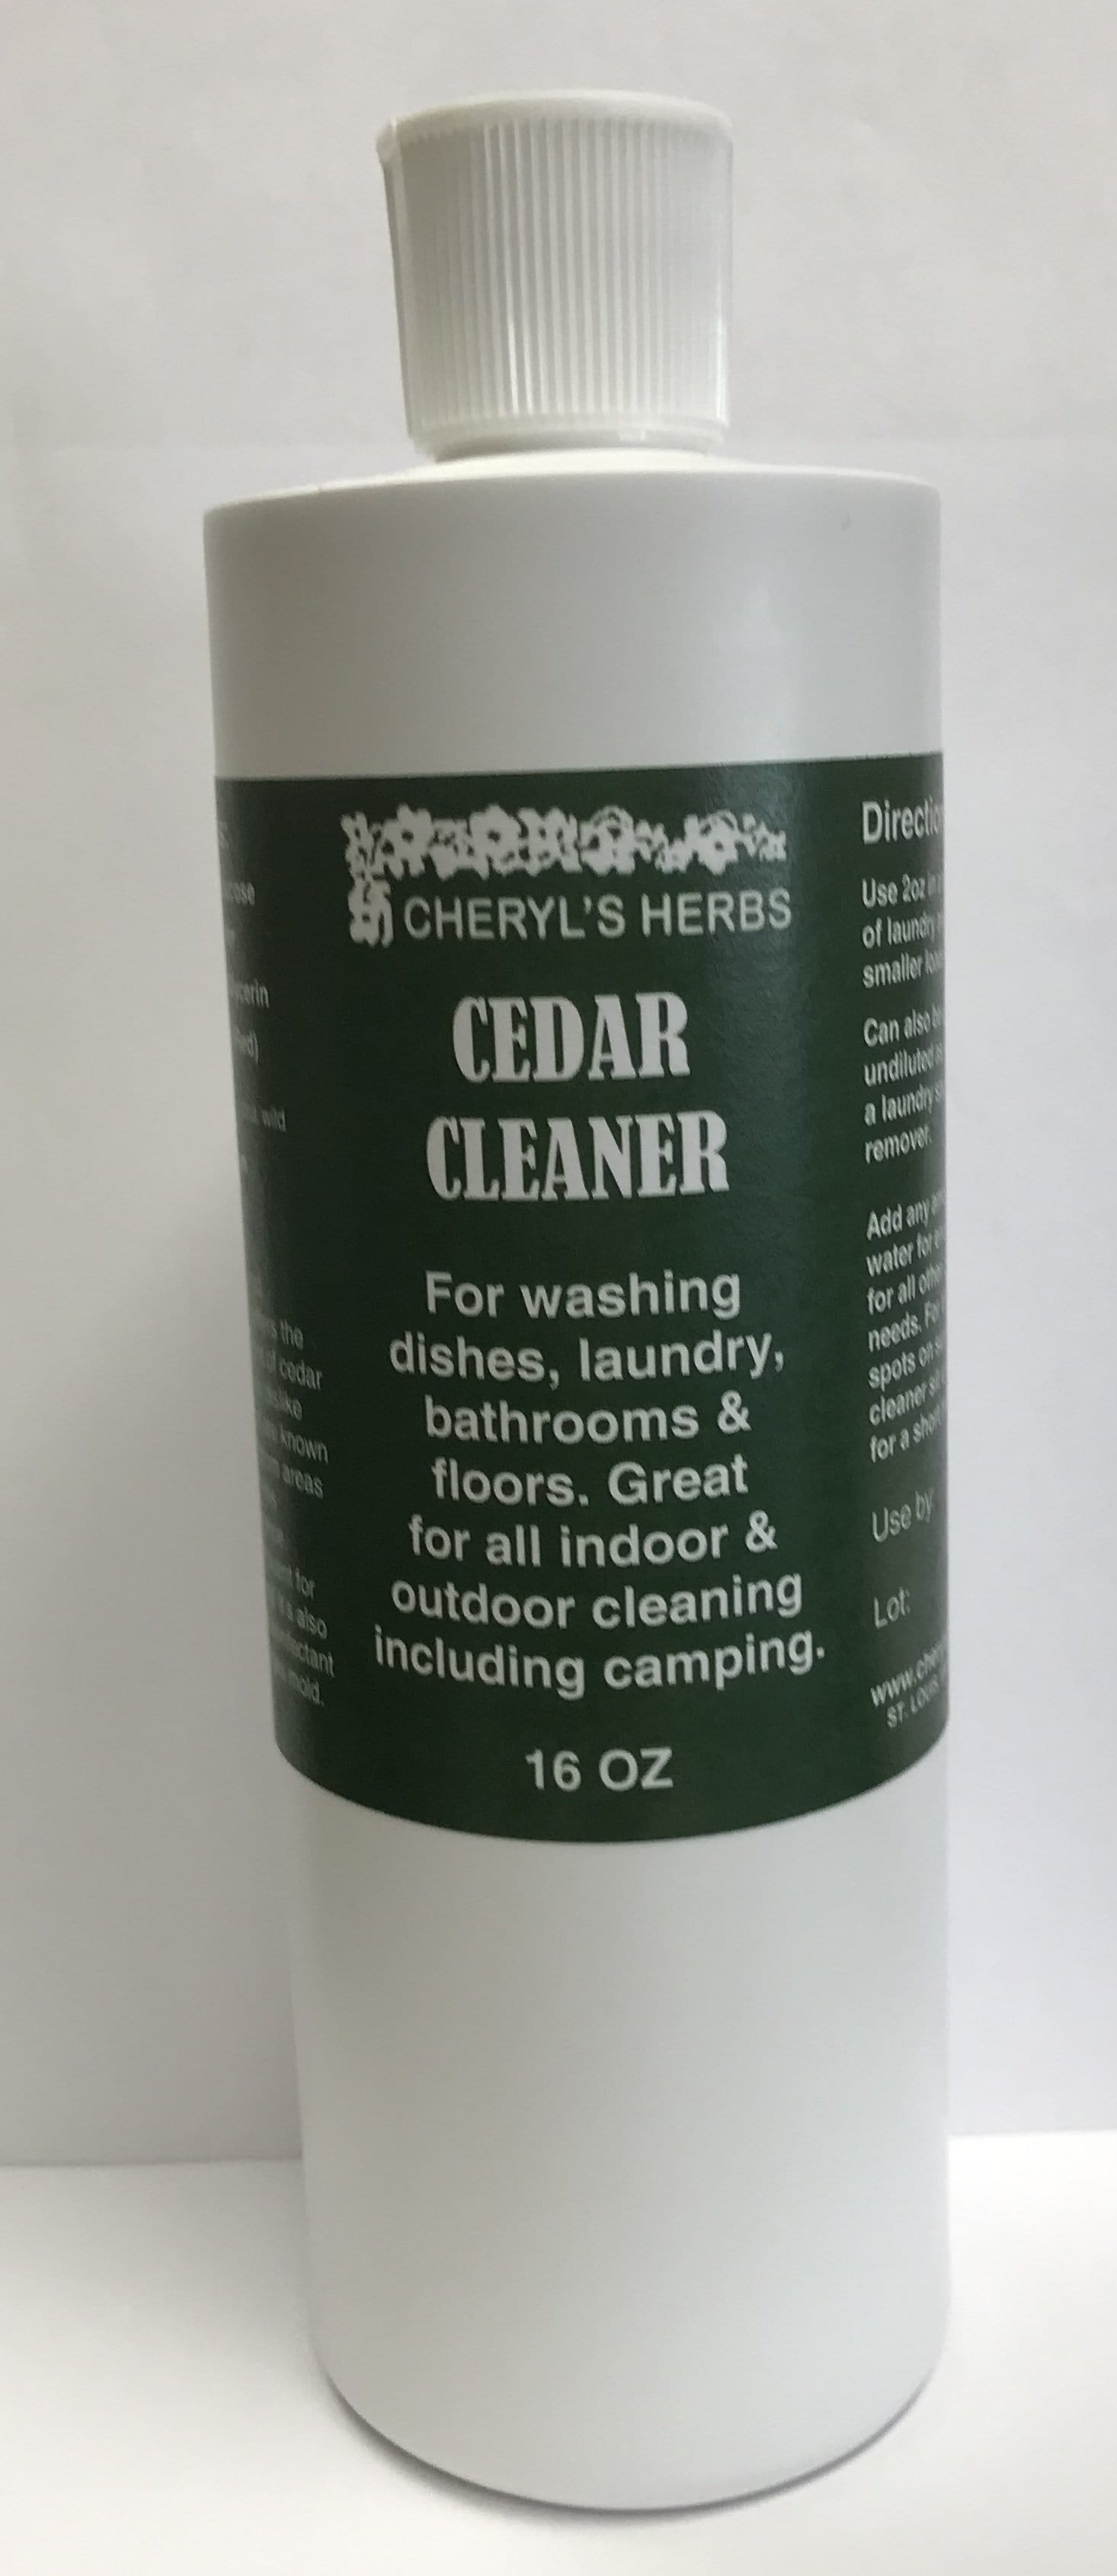 CEDAR CLEANER HOUSEHOLD SOAP - Cheryls Herbs